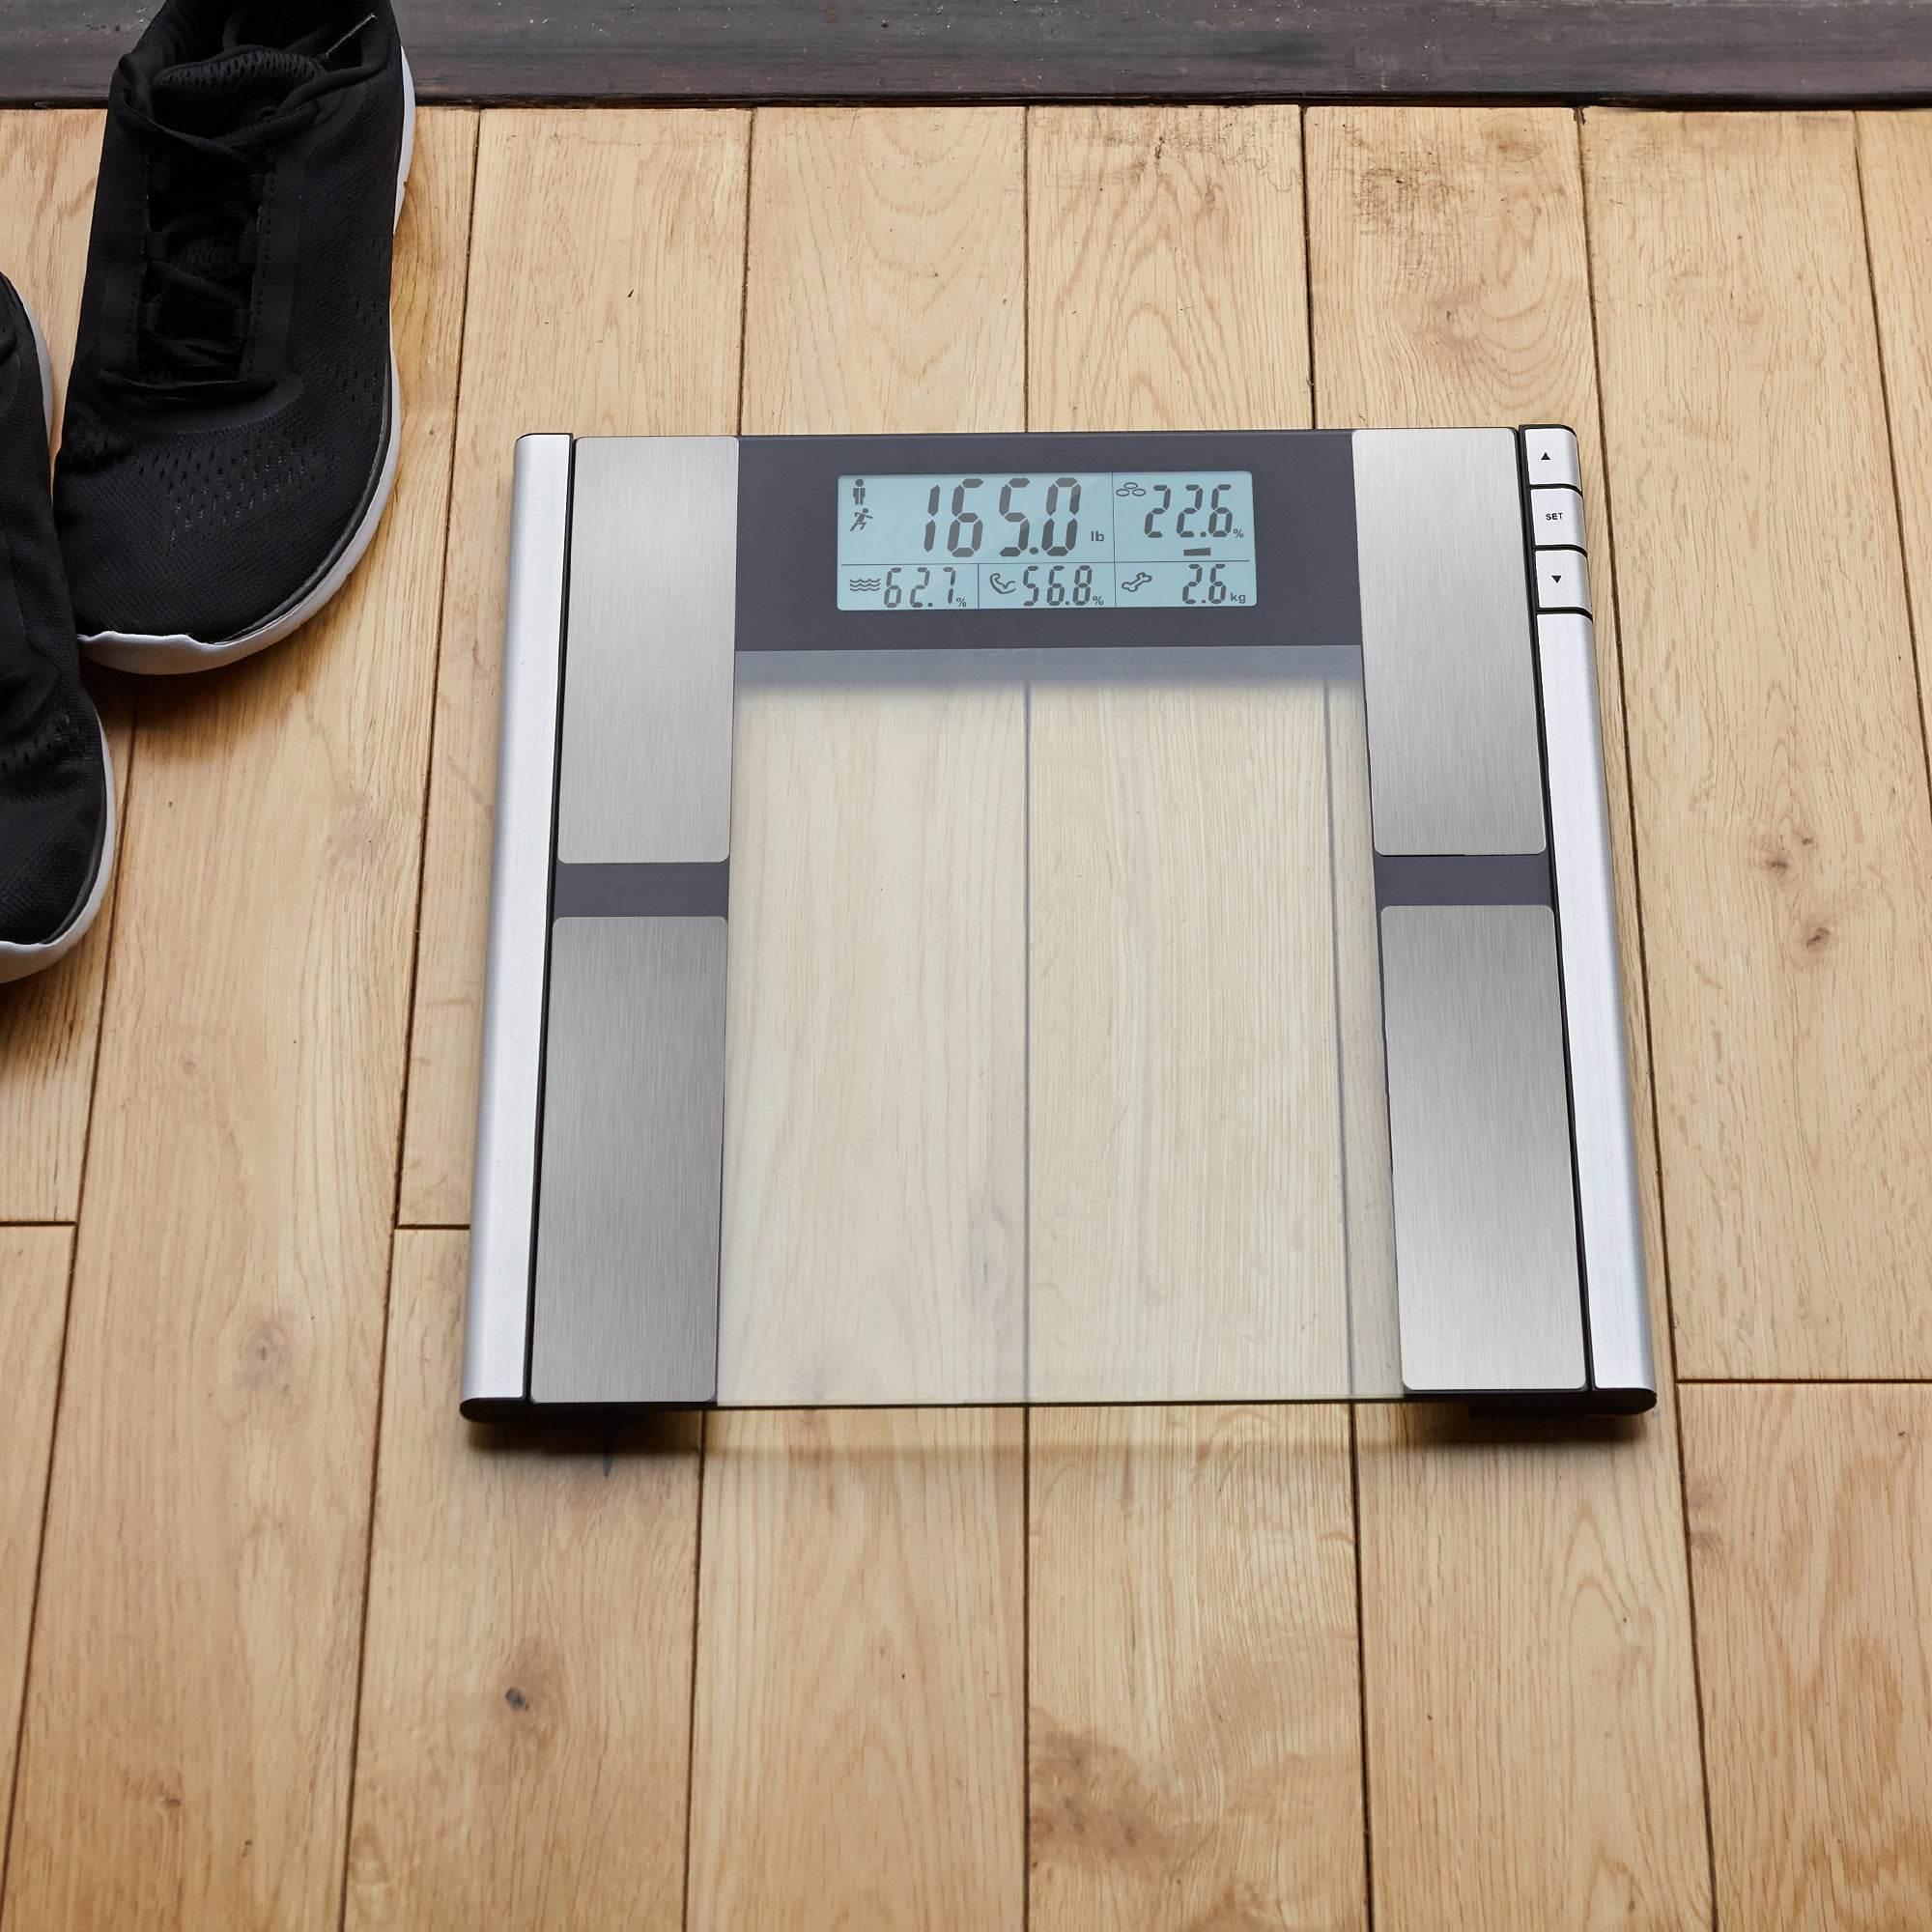 Form Fit: Digital Scale and Body Analyzer – vitagoods